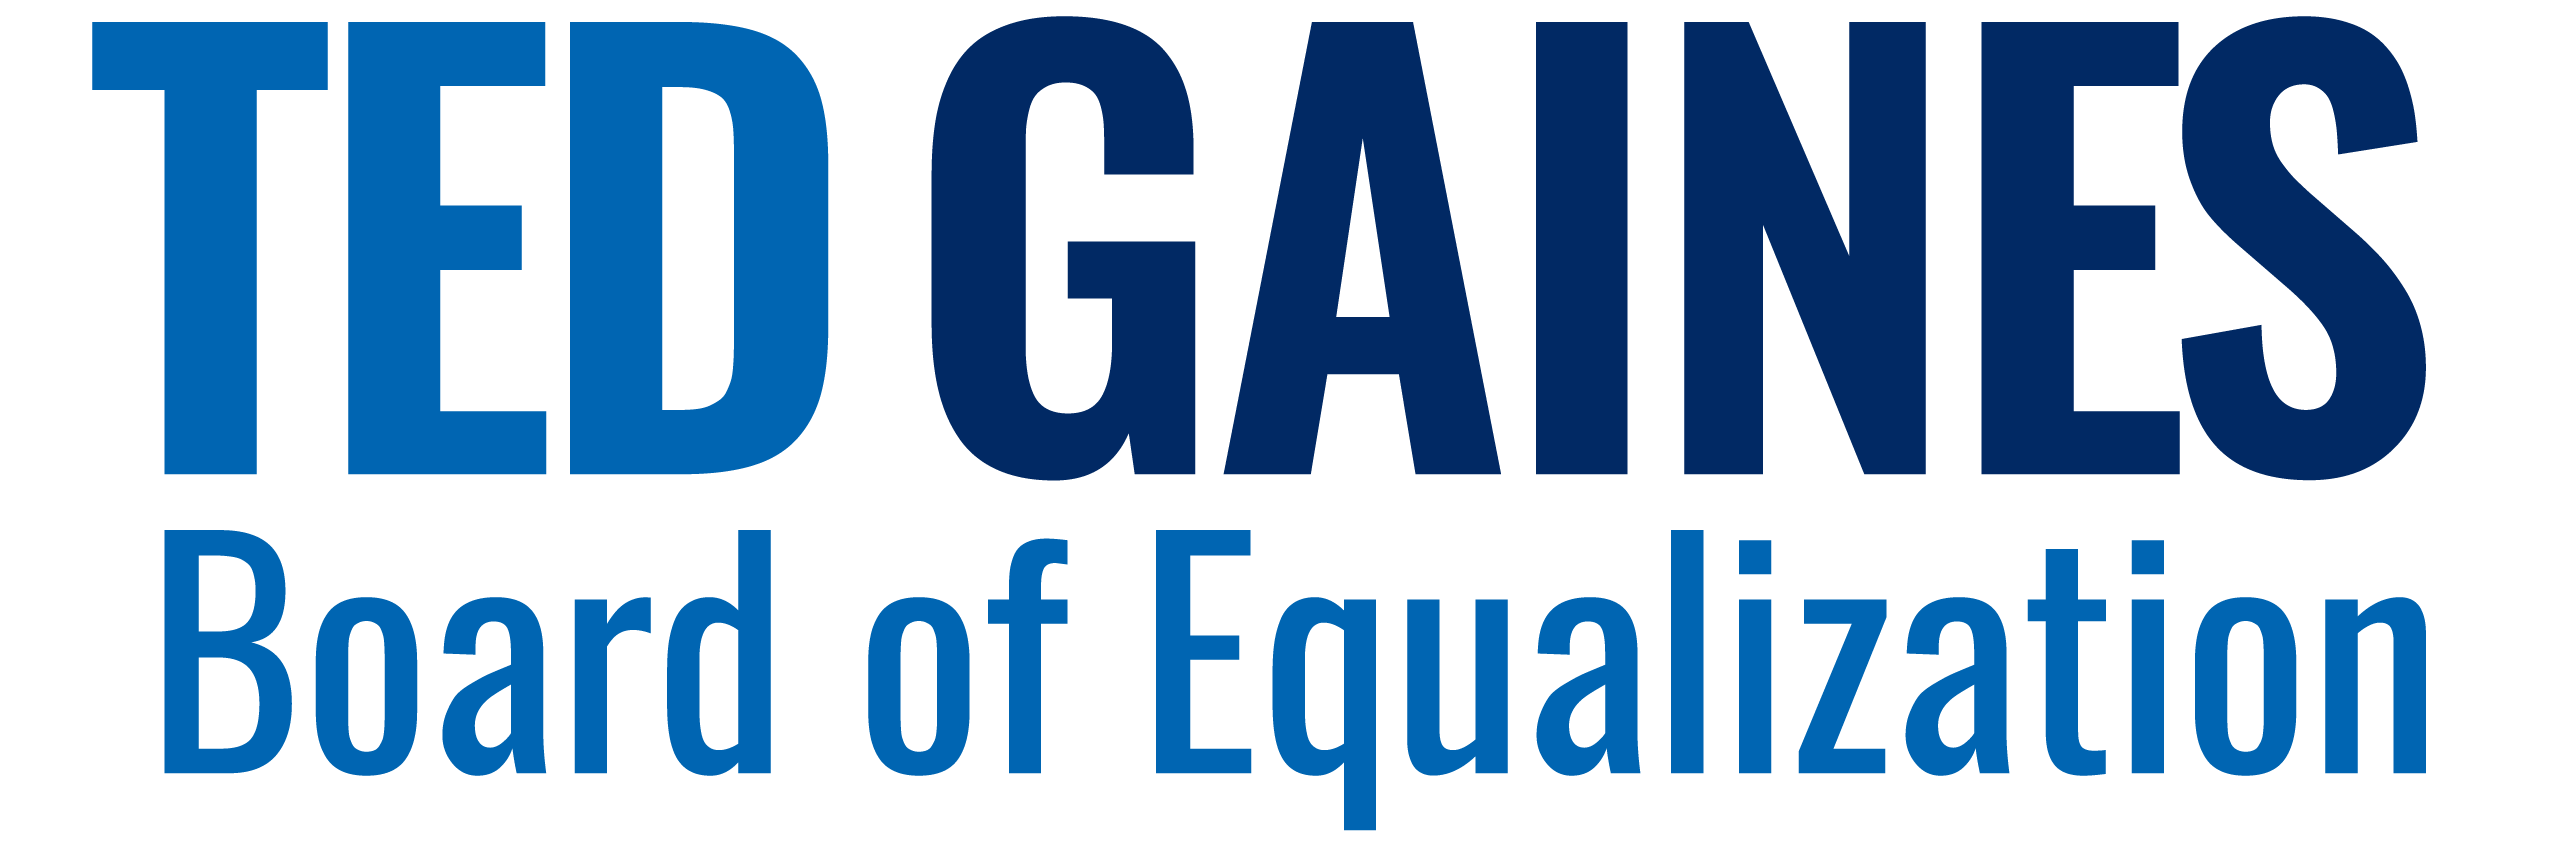 Ted Gaines for Board of Equalization